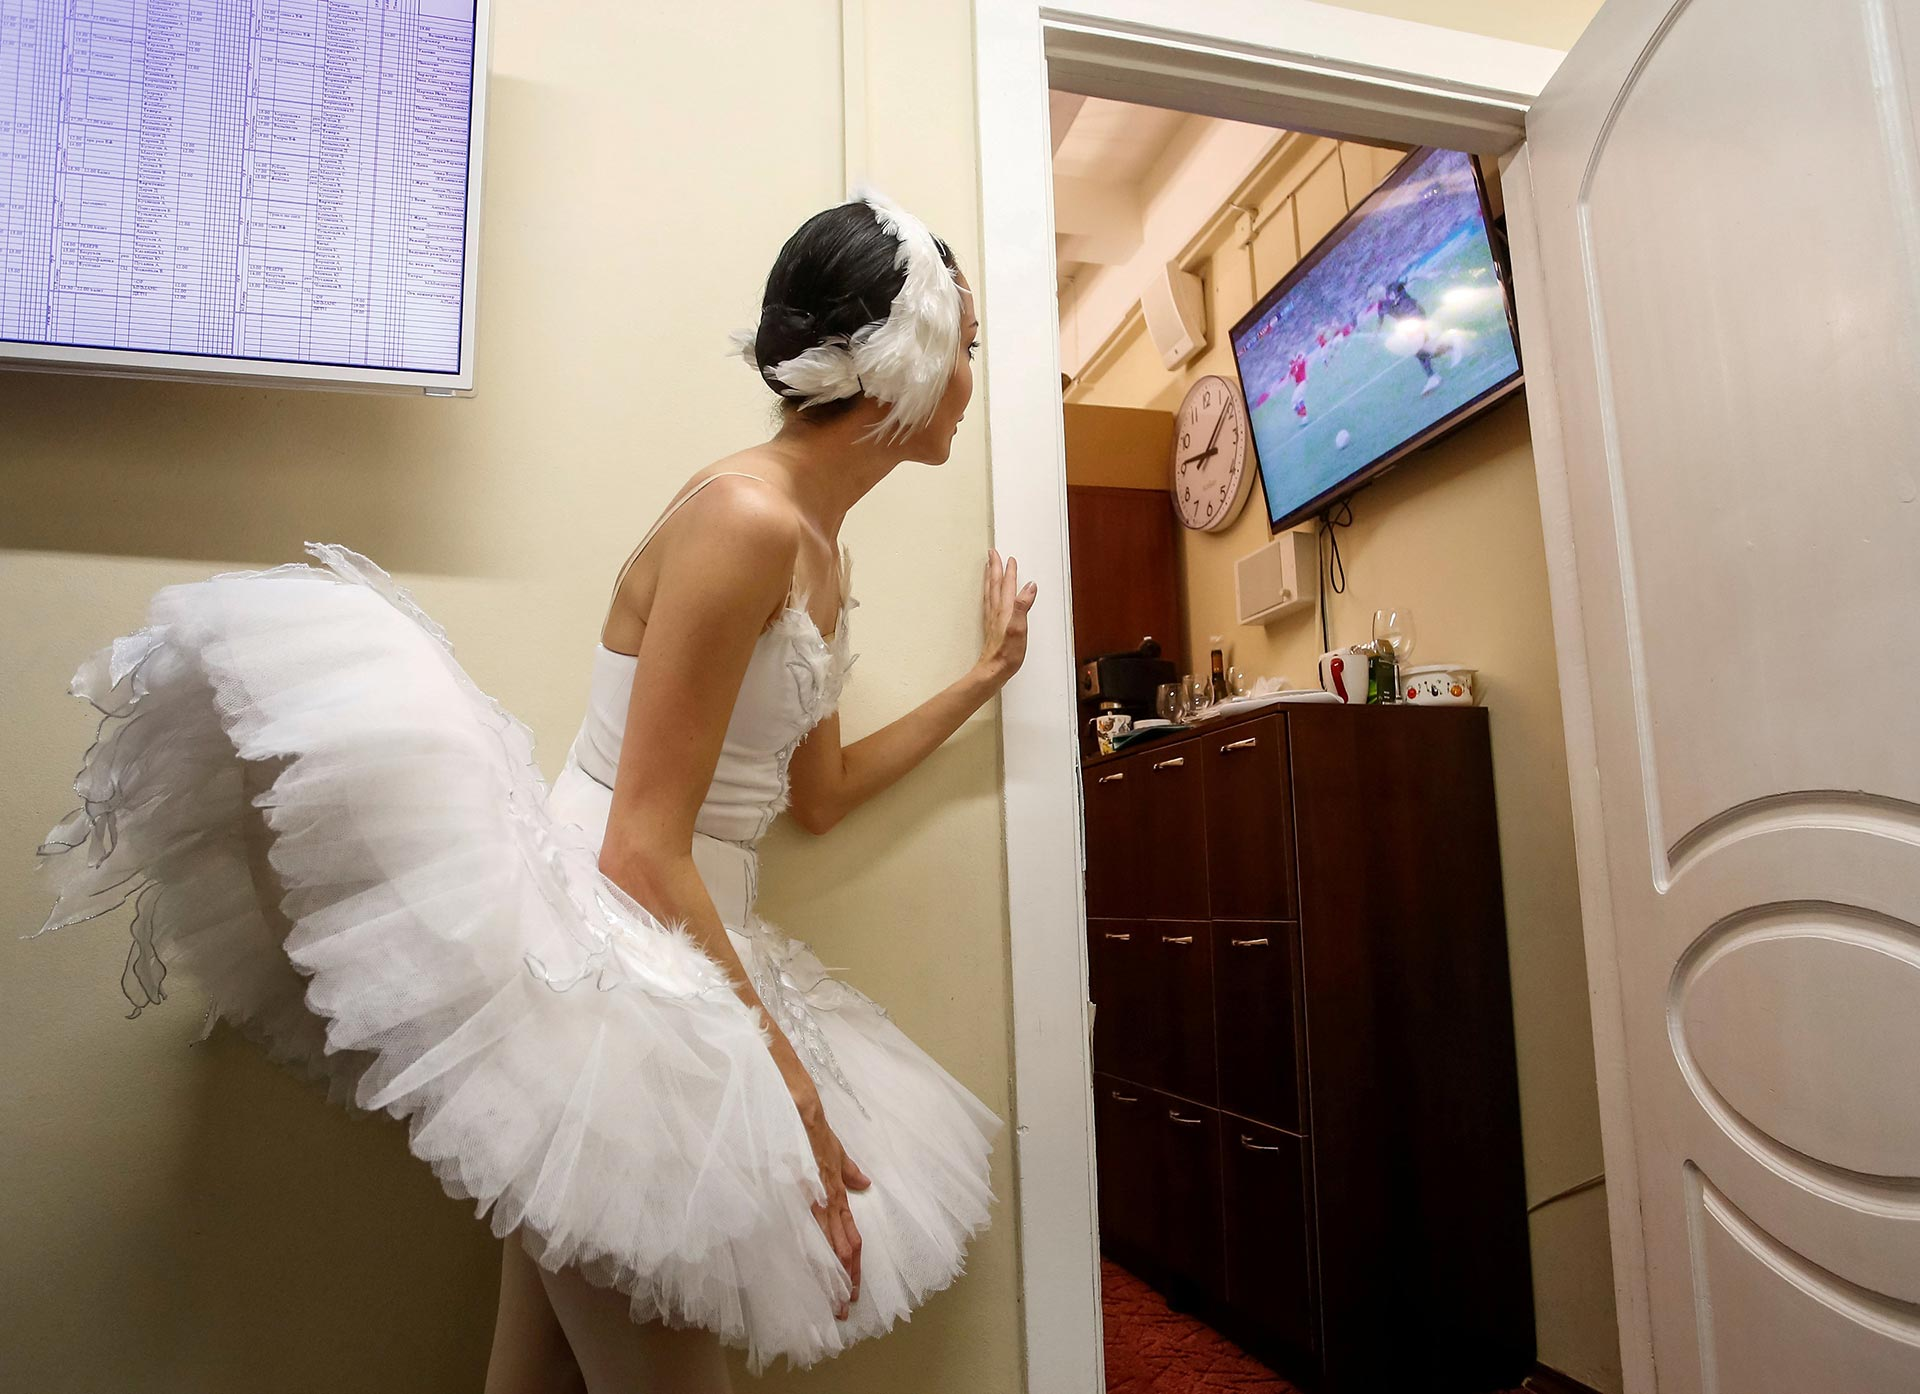 A ballerina watches the broadcast of the World Cup